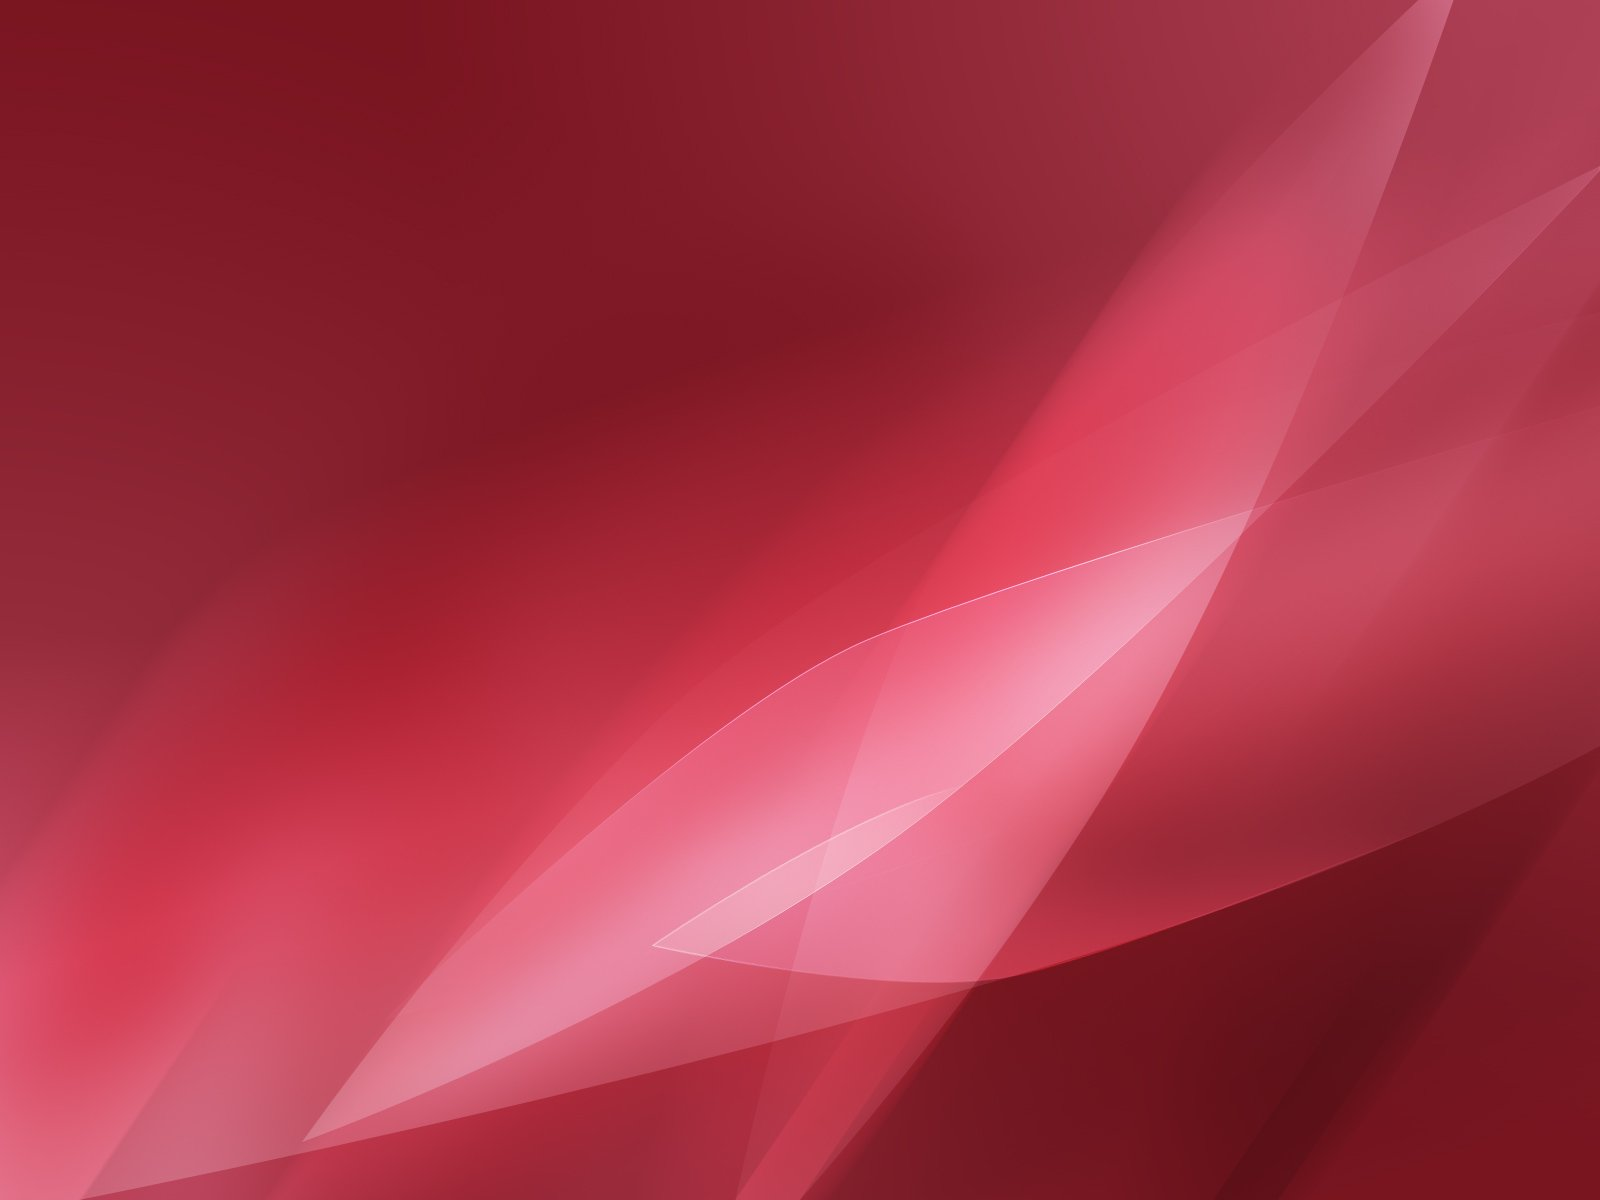 Red Wallpapers hd abstract red wallpaper Wallpapereorg 1600x1200